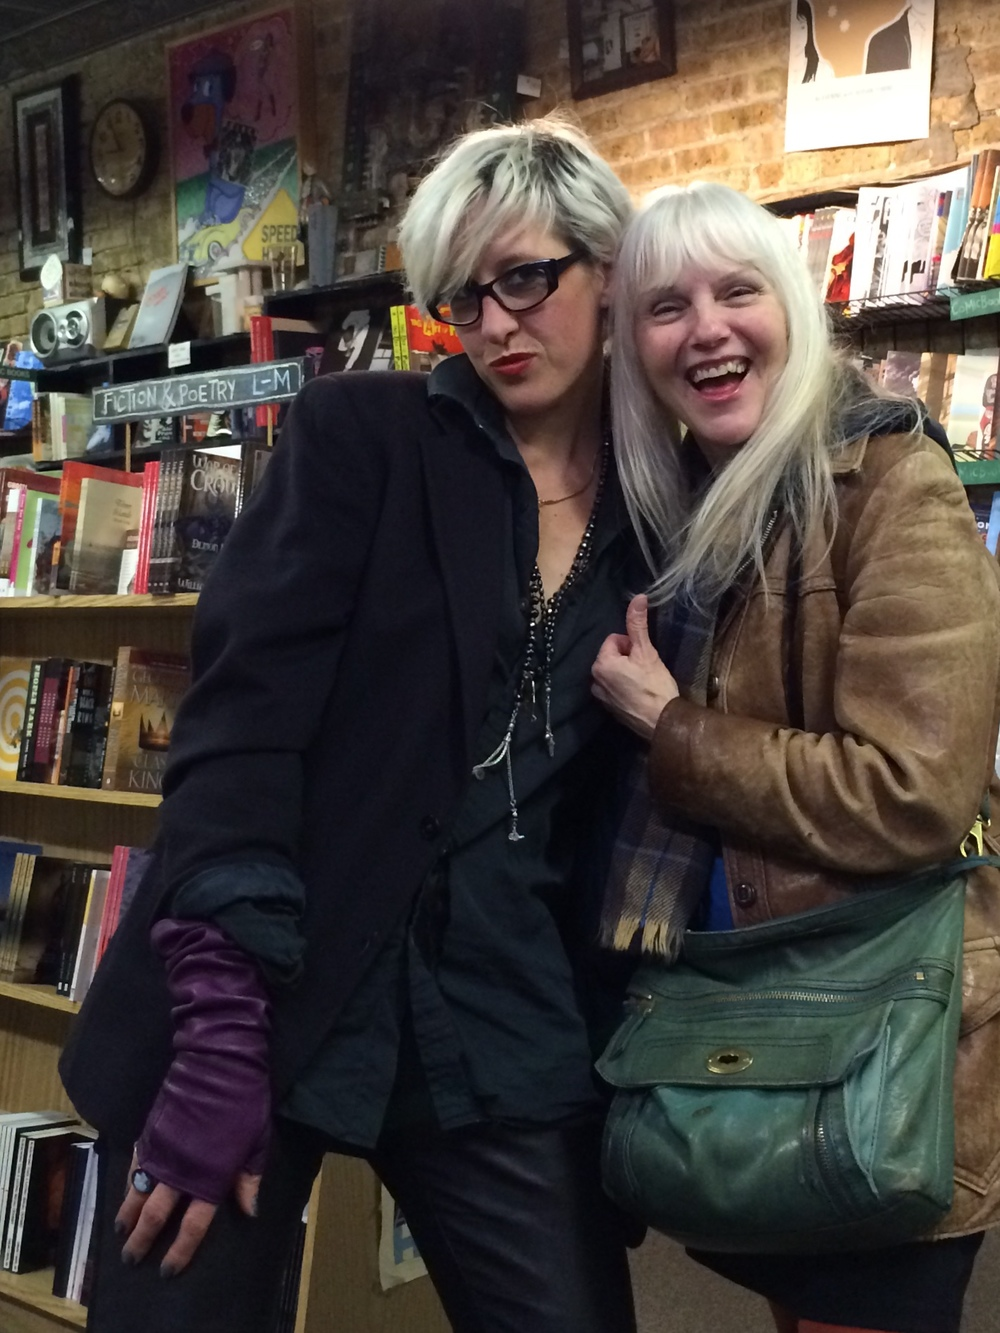 Cynthia Plaster Caster and Chloe, Quimby's